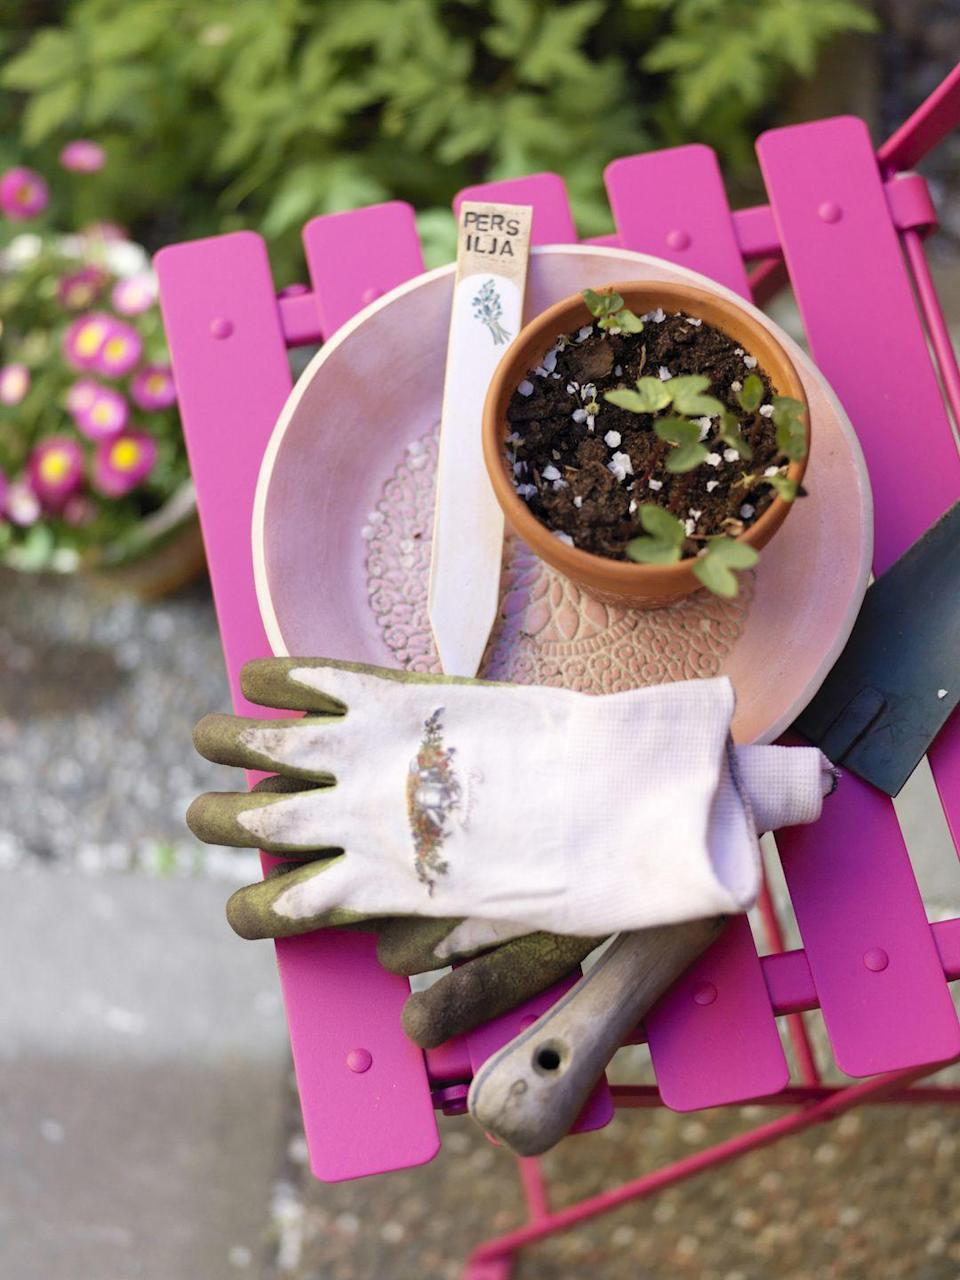 "<p>Of course there's nothing wrong with getting a little dirt on your fingers, but if your gloves are too beat up, you could be susceptible to injuries. Consider repurposing them and the rest of your old tools into <a href=""https://www.countryliving.com/diy-crafts/g2484/repurposed-gardening-tools/"" rel=""nofollow noopener"" target=""_blank"" data-ylk=""slk:pretty DIY projects"" class=""link rapid-noclick-resp"">pretty DIY projects</a>.</p>"